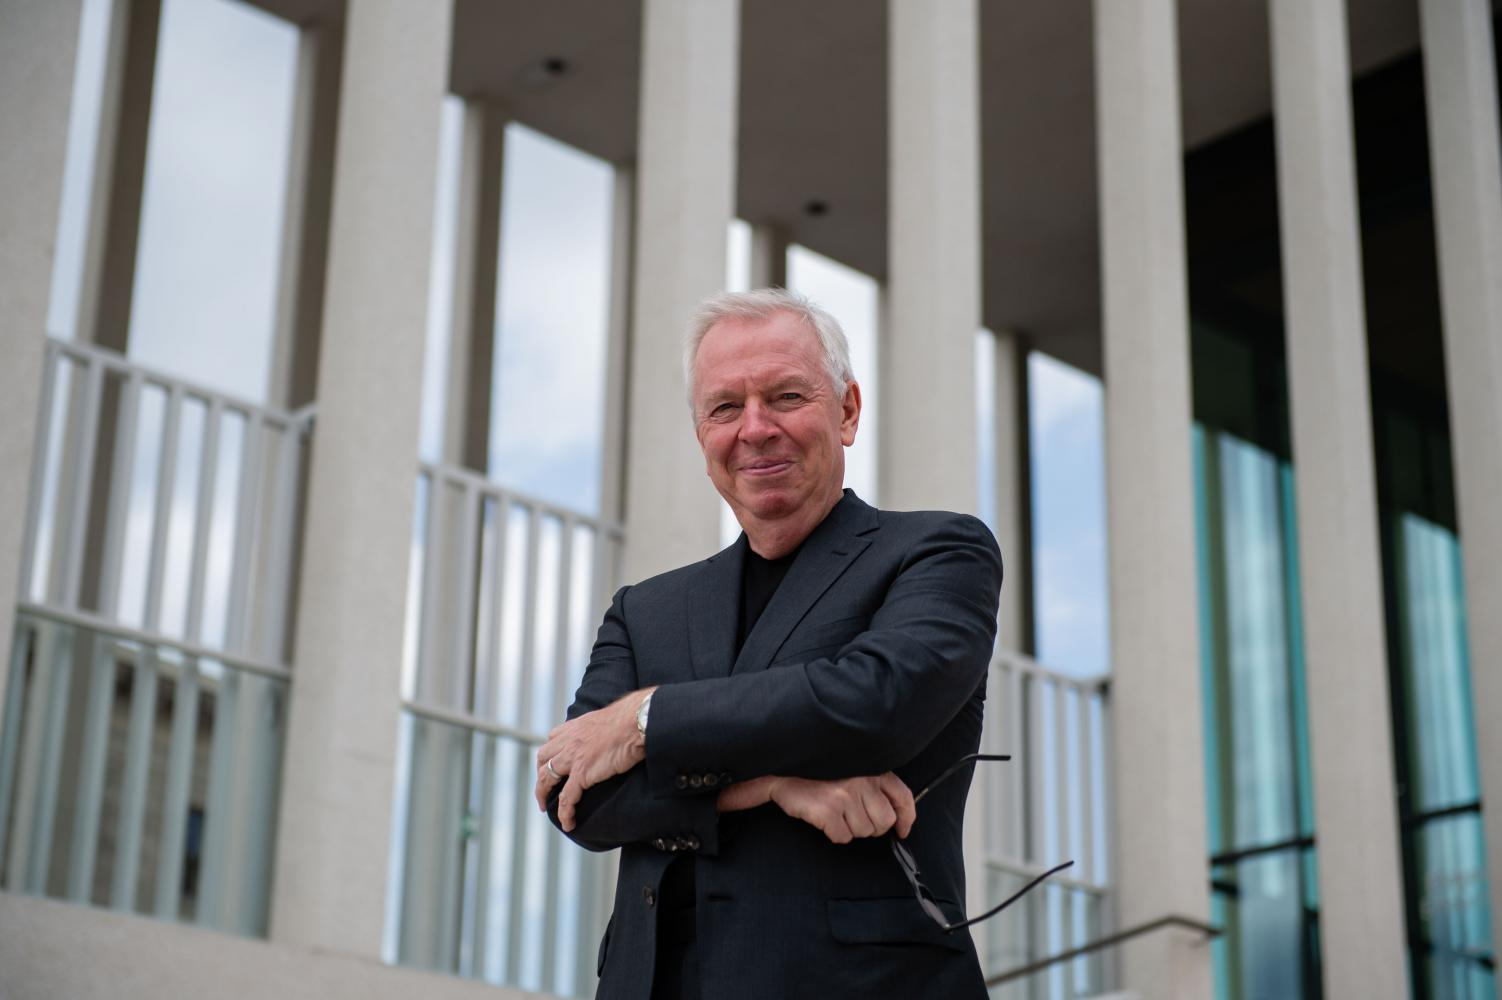 Architekt David Chipperfield vor der James-Simon-Galerie